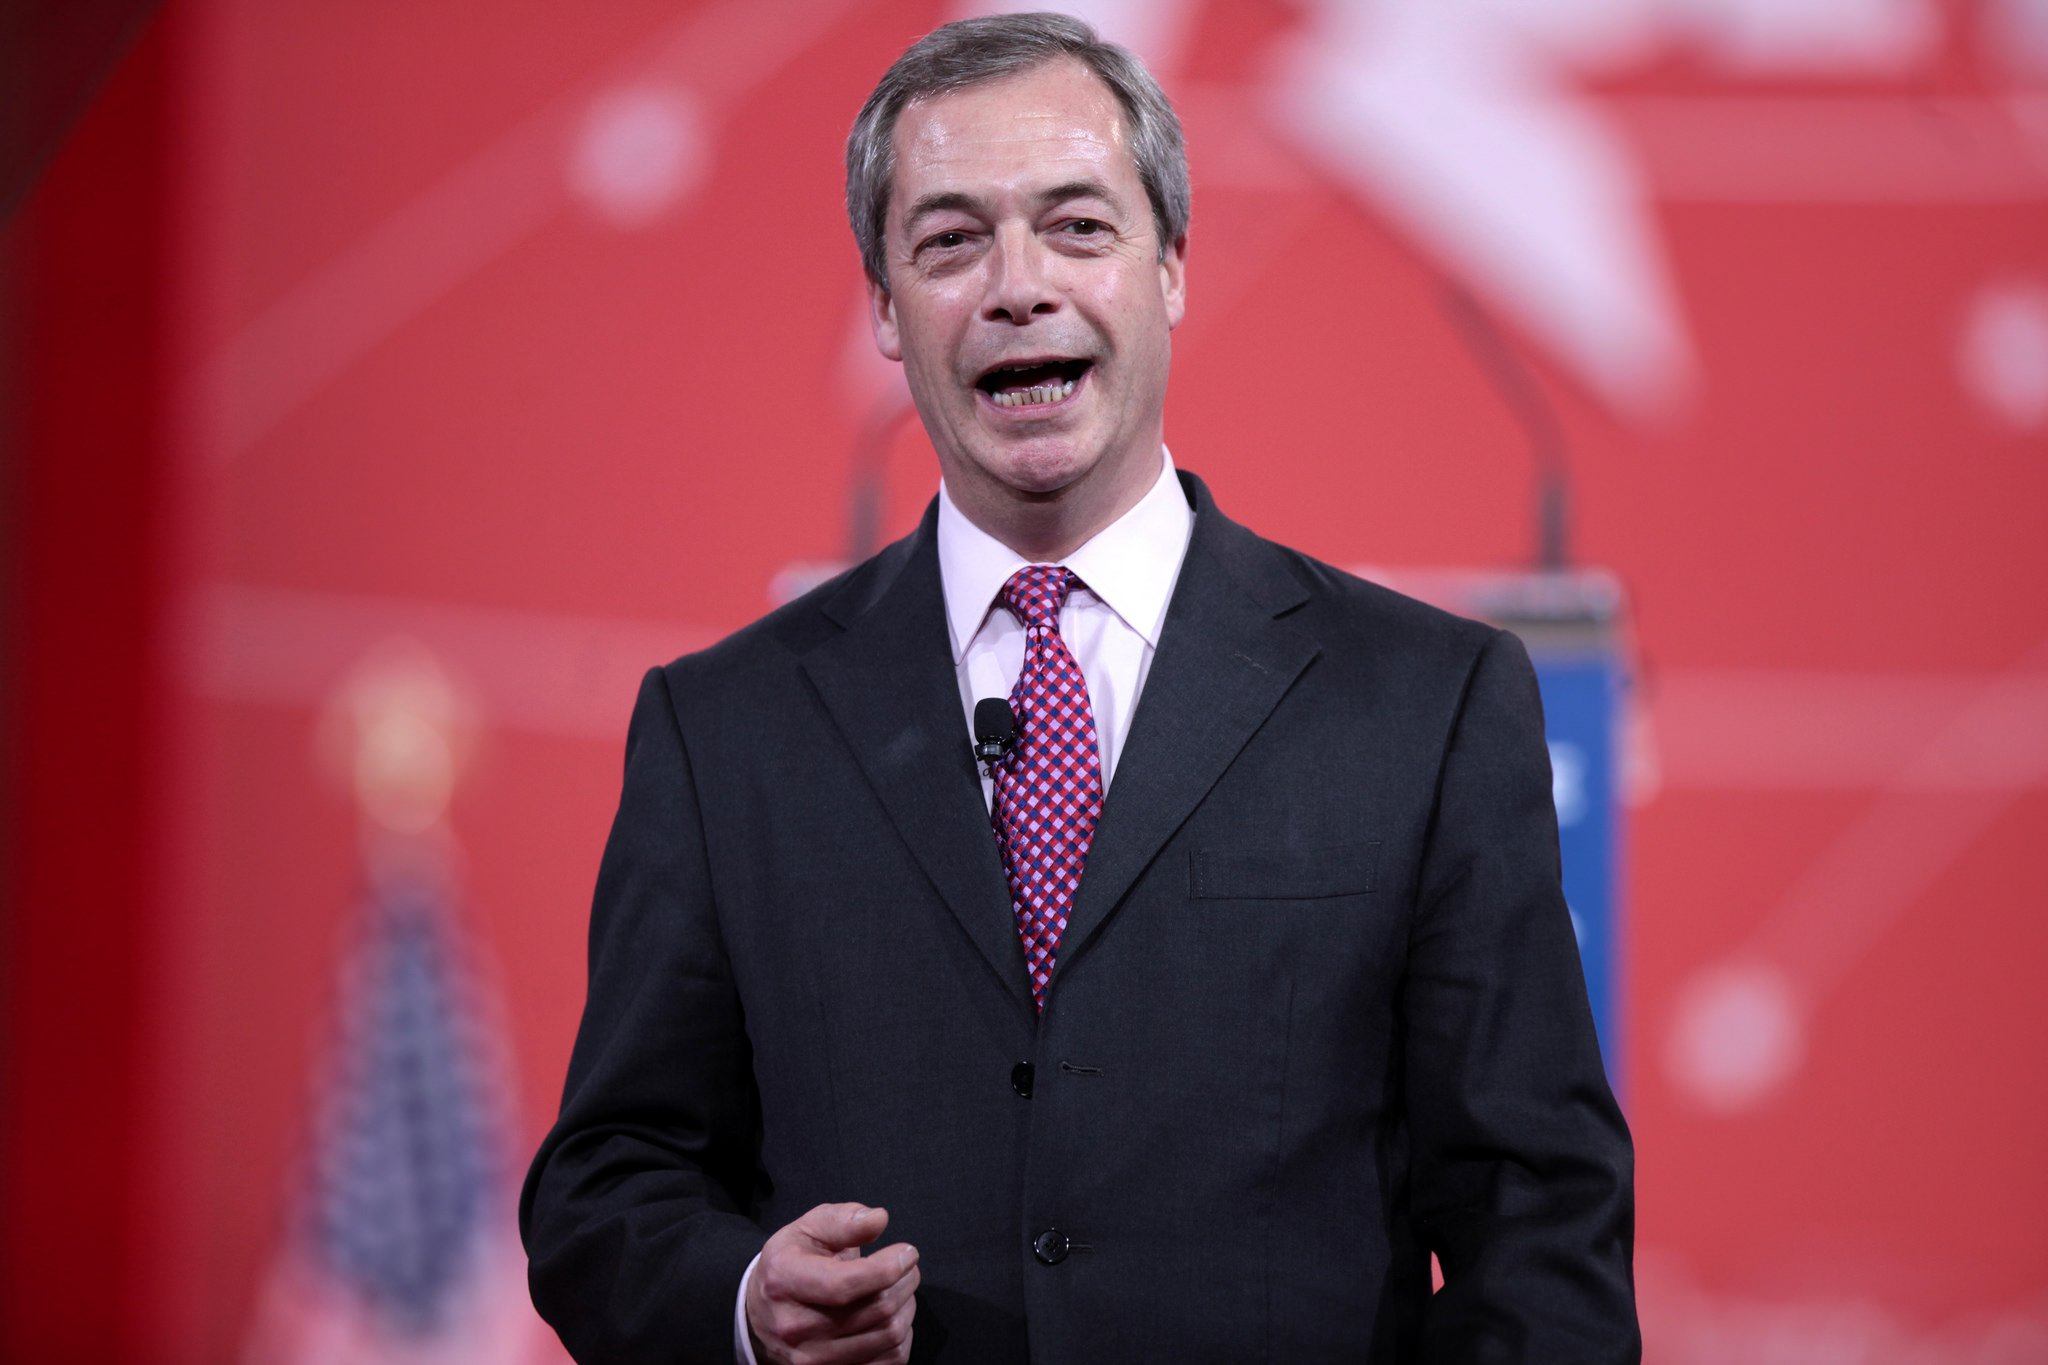 Leave campaigner Nigel Farage